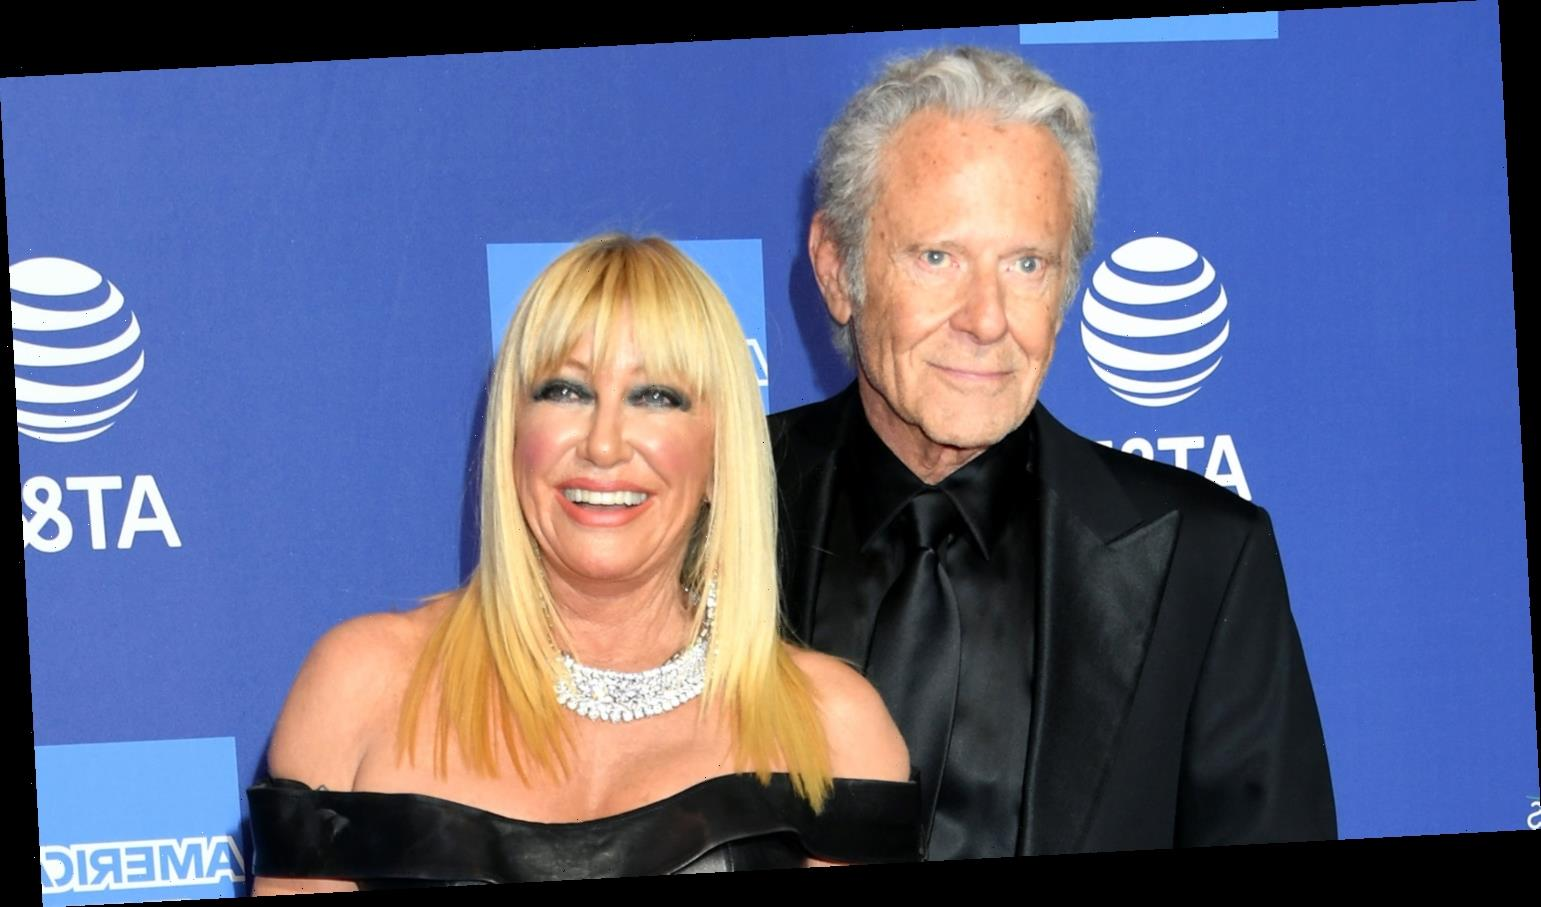 Suzanne Somers Says Her Husband Still 'Turns' Her On After 50 Years Together